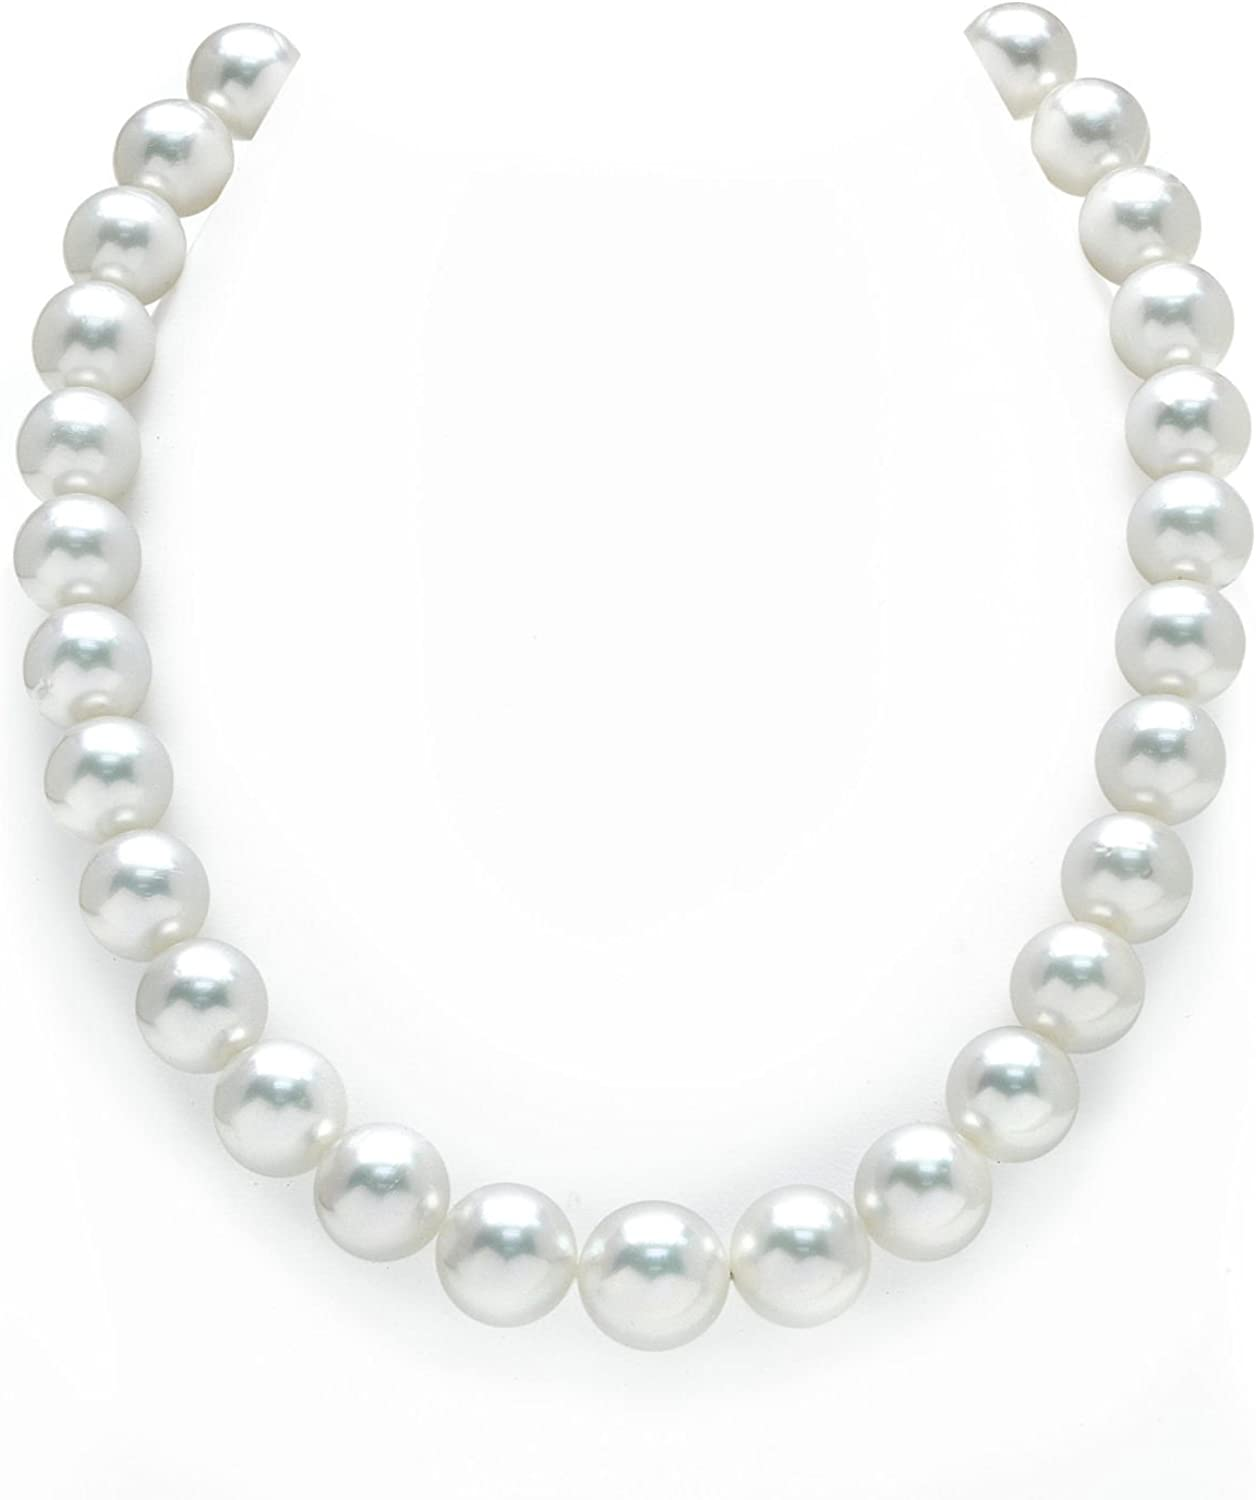 THE Ranking TOP17 PEARL Large discharge sale SOURCE 14K Gold 12-14mm Round South Sea Genuine White